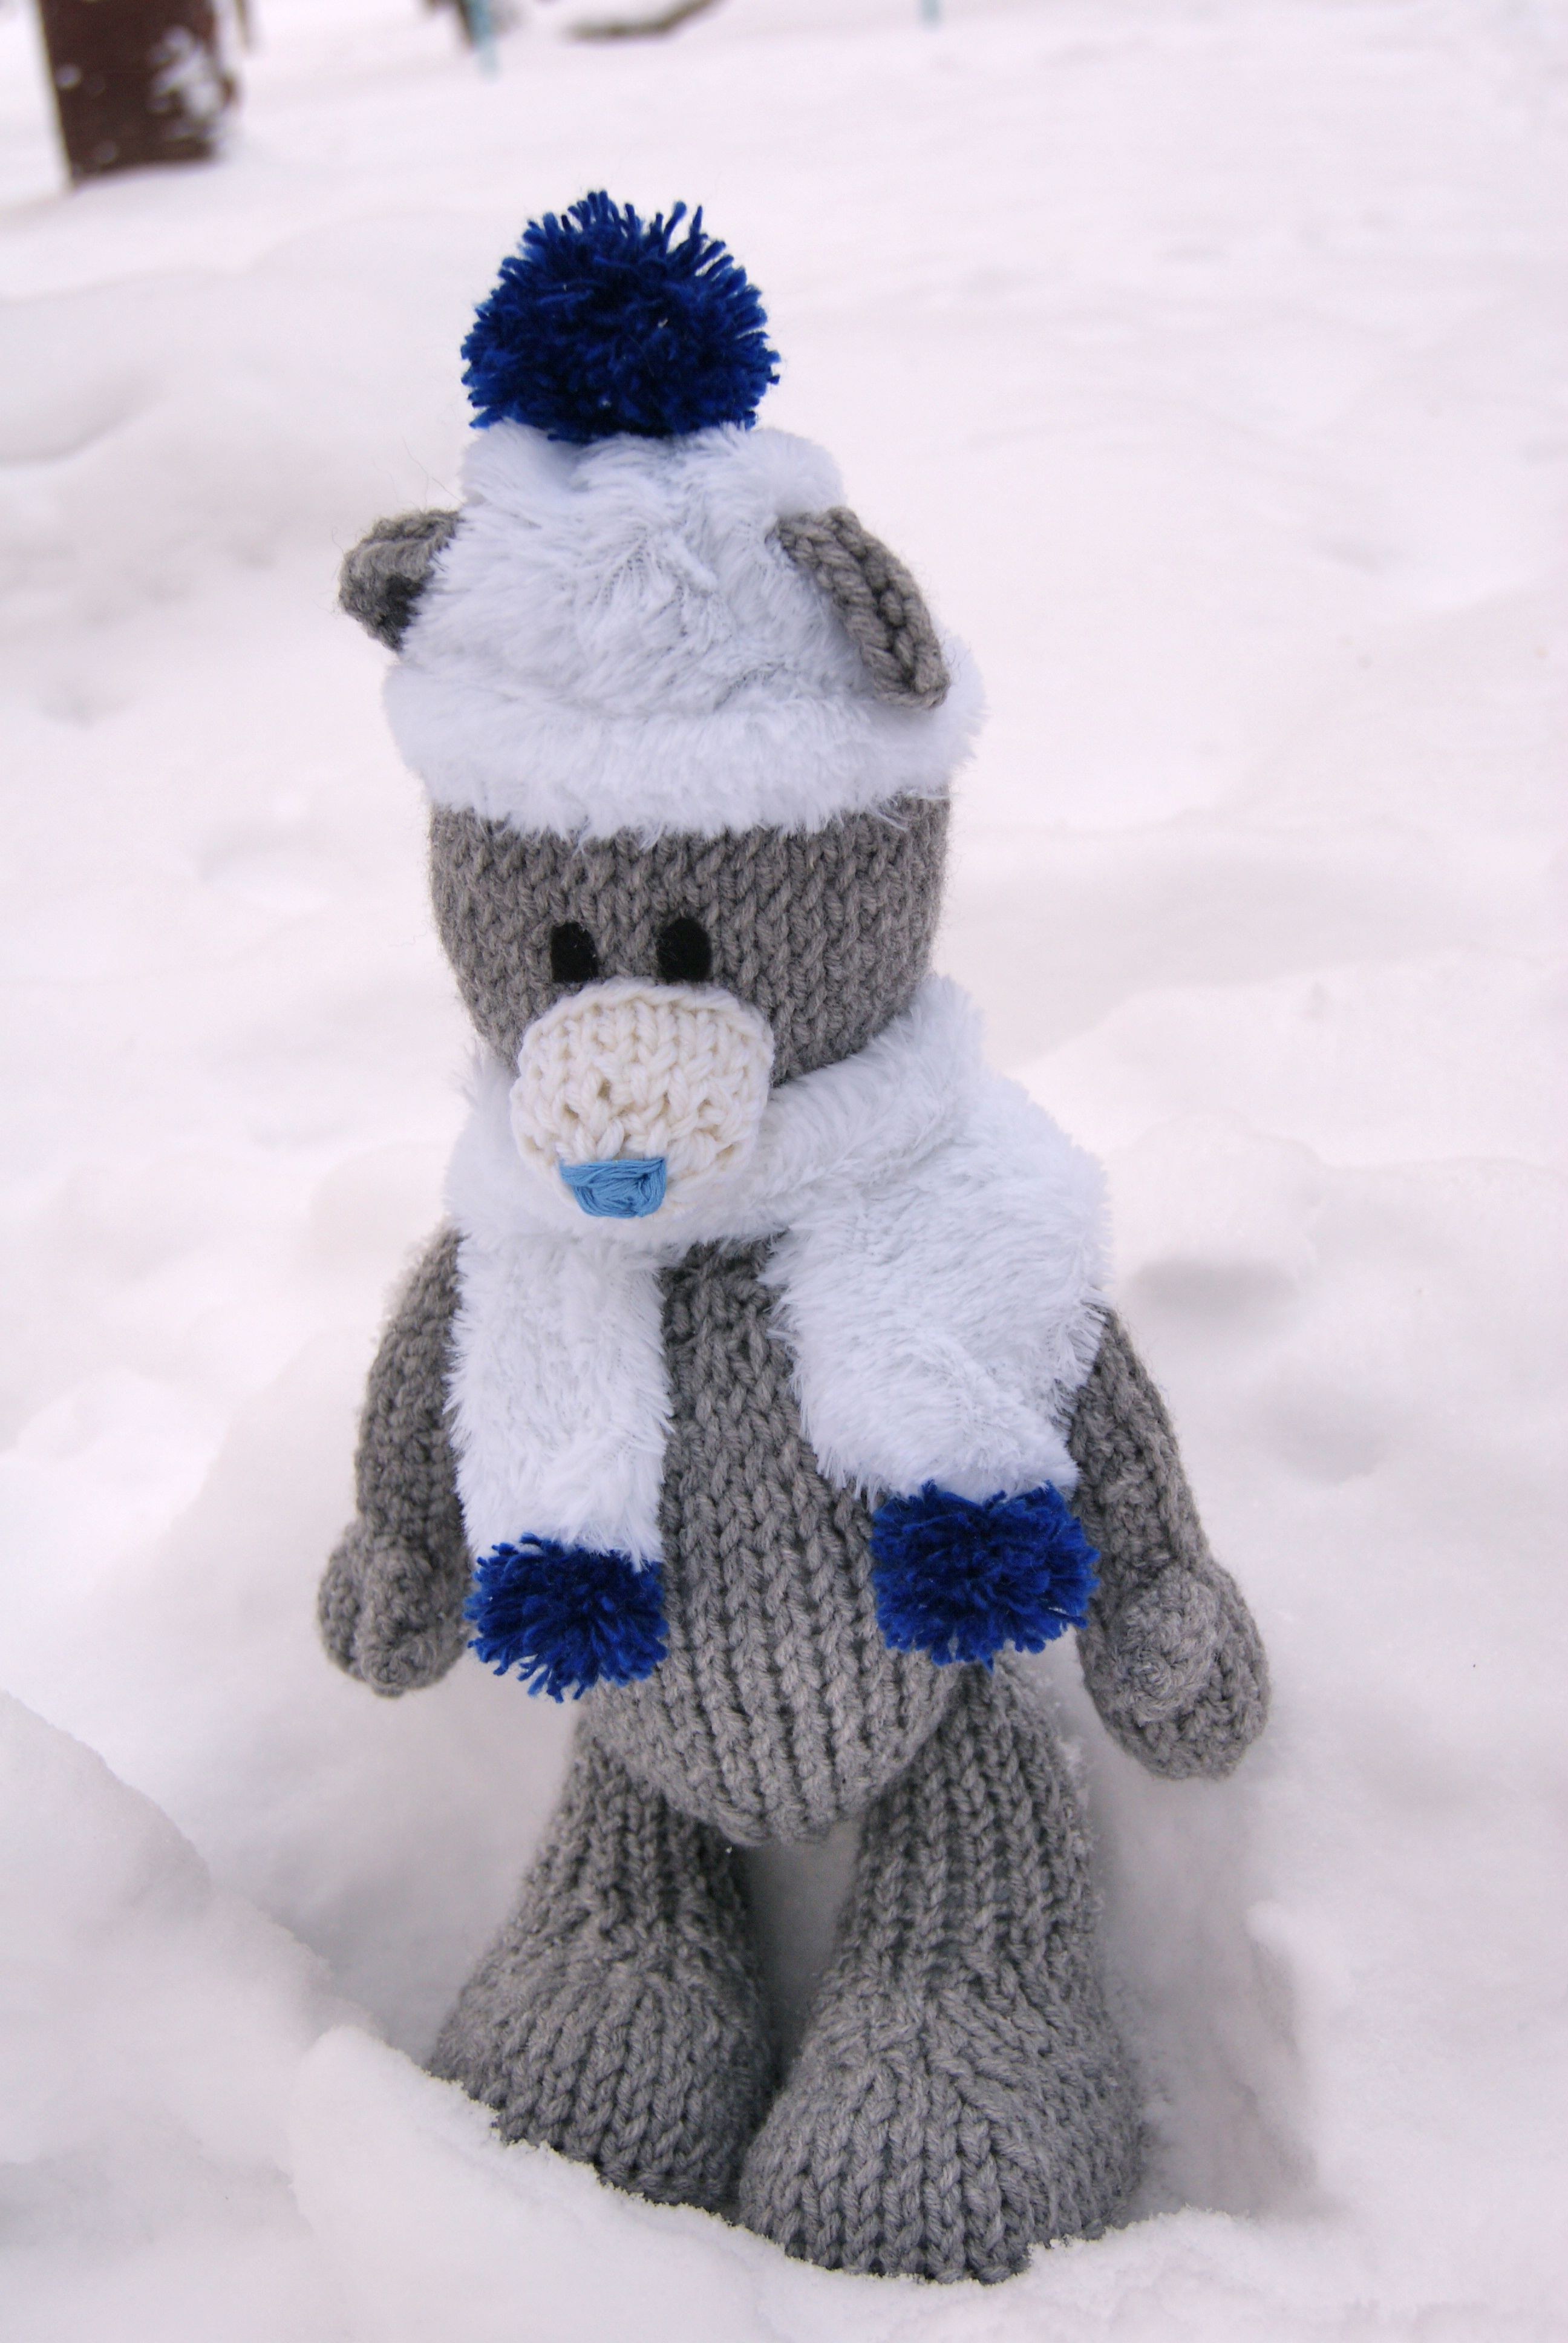 toy gift winter teddy warn interiortoy bear knit